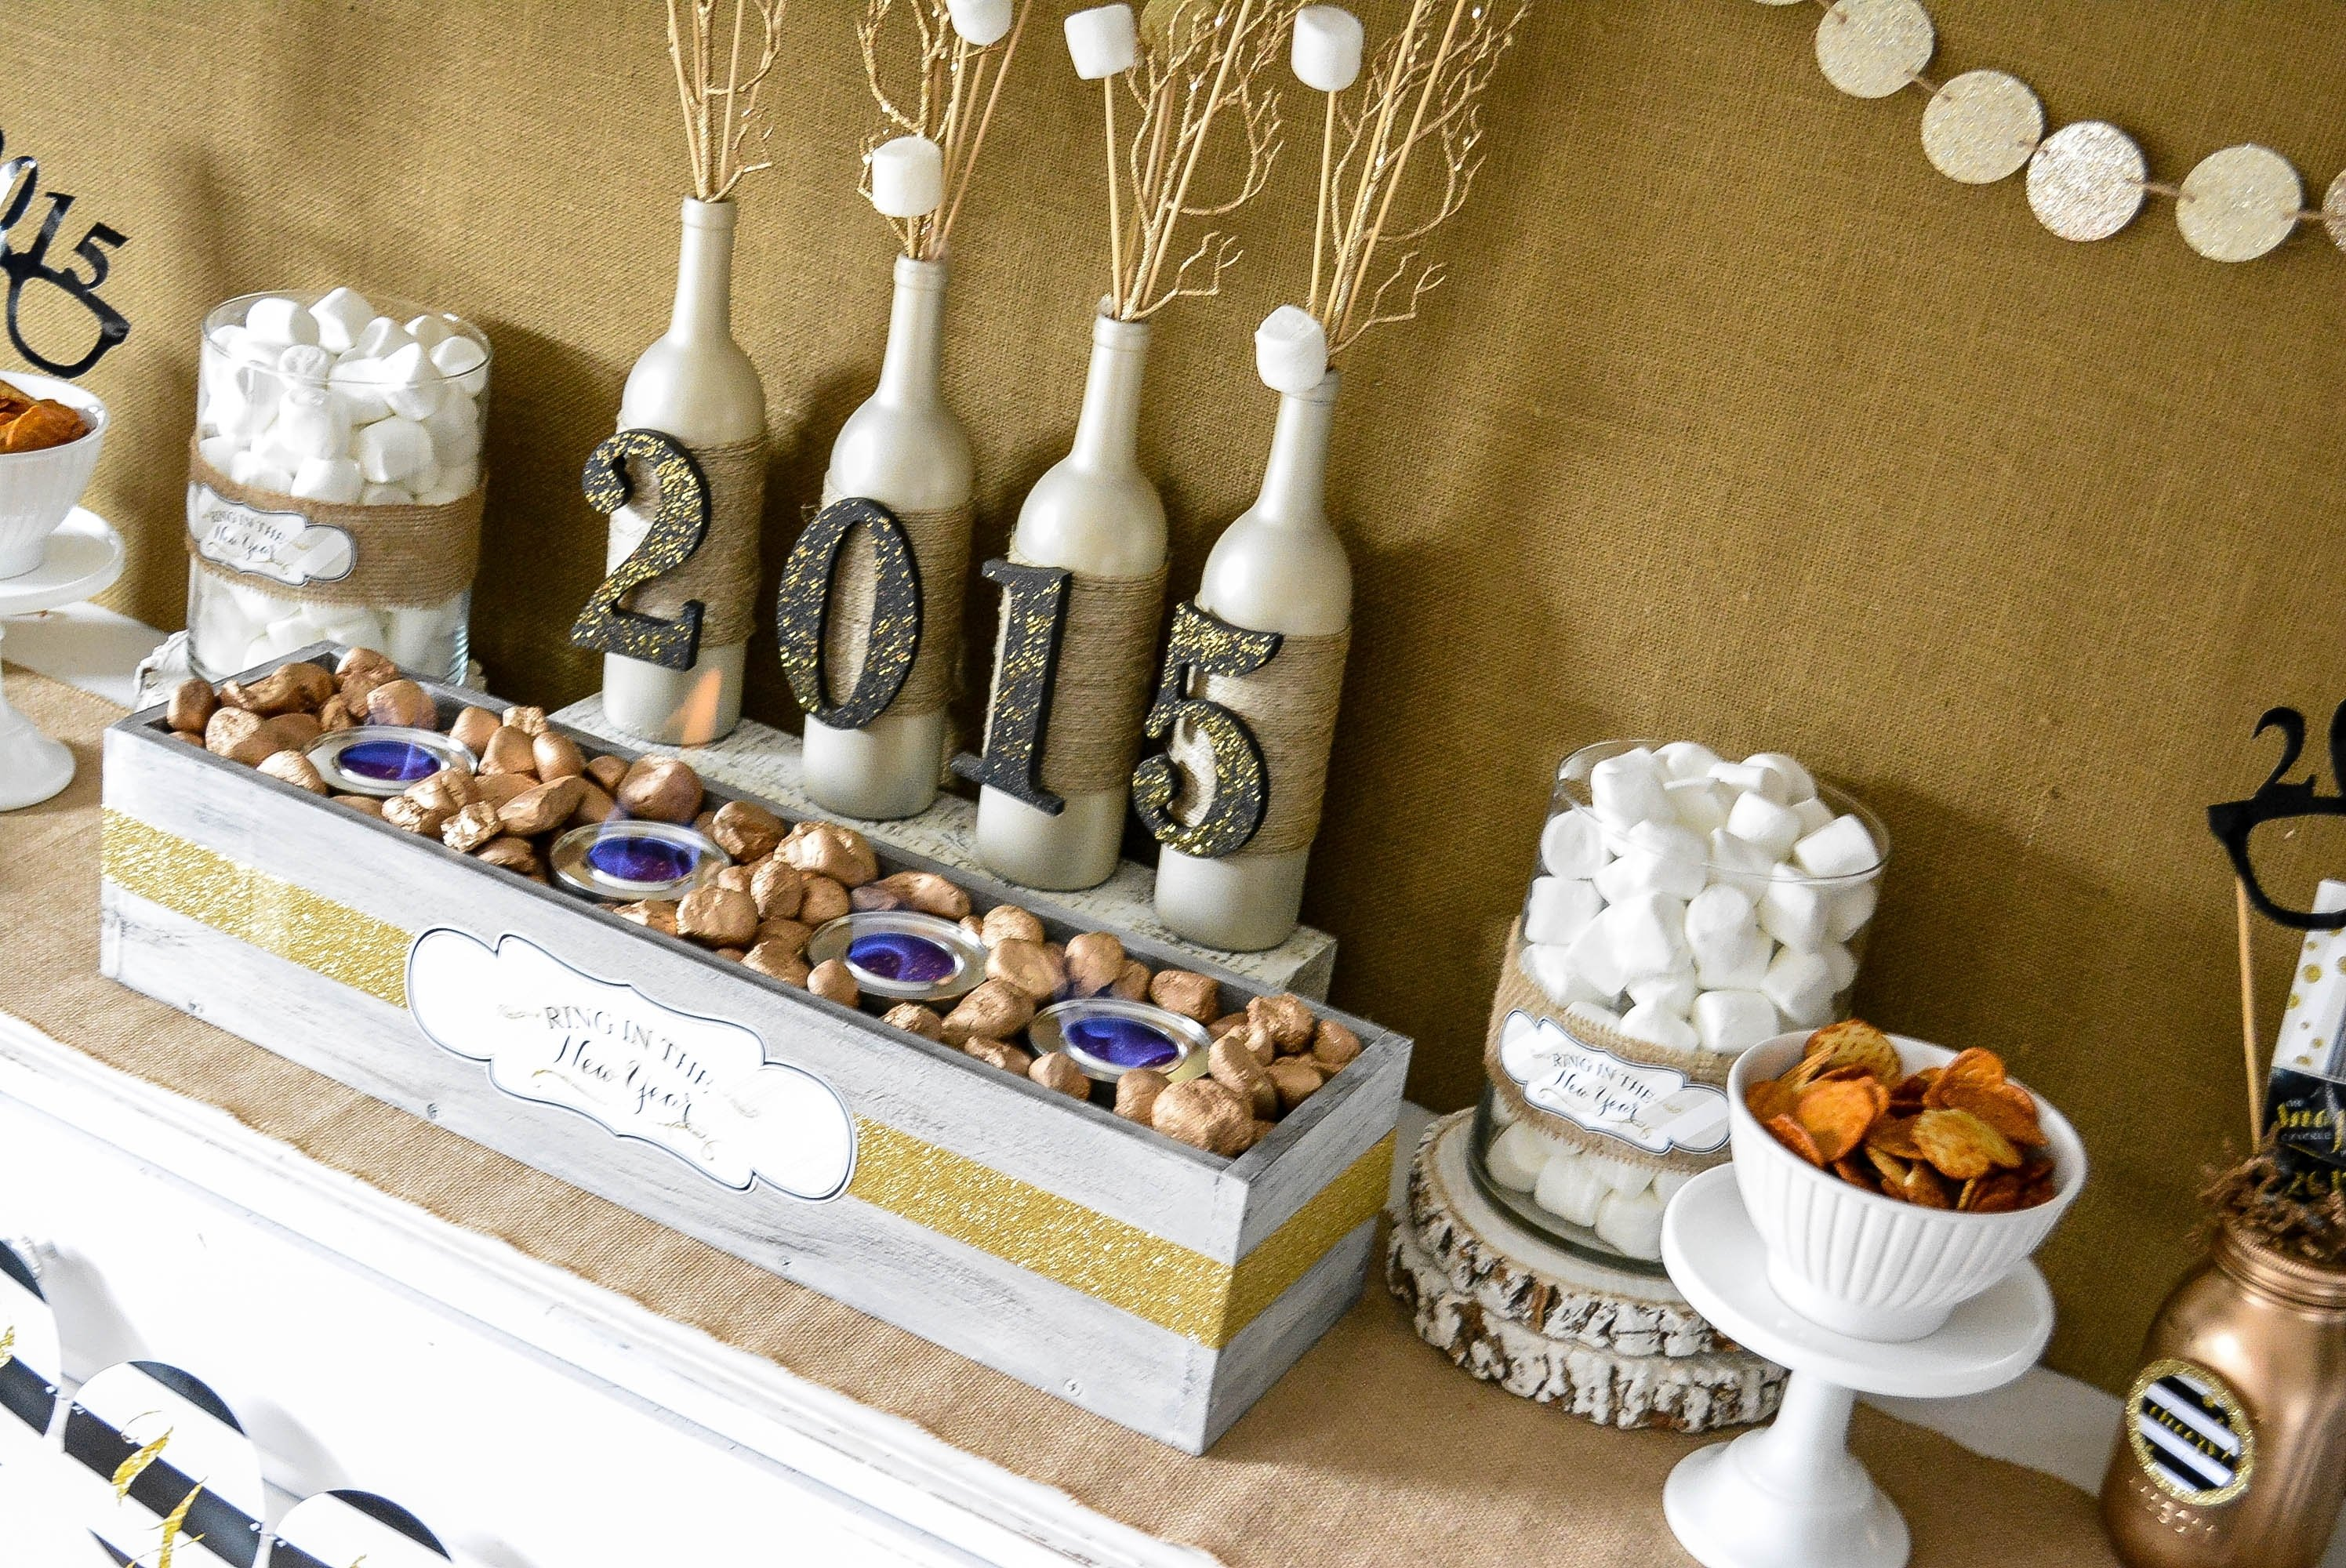 10 Unique Unique New Years Eve Ideas furniture new years eve table decorations dinner ideas images 1 2020